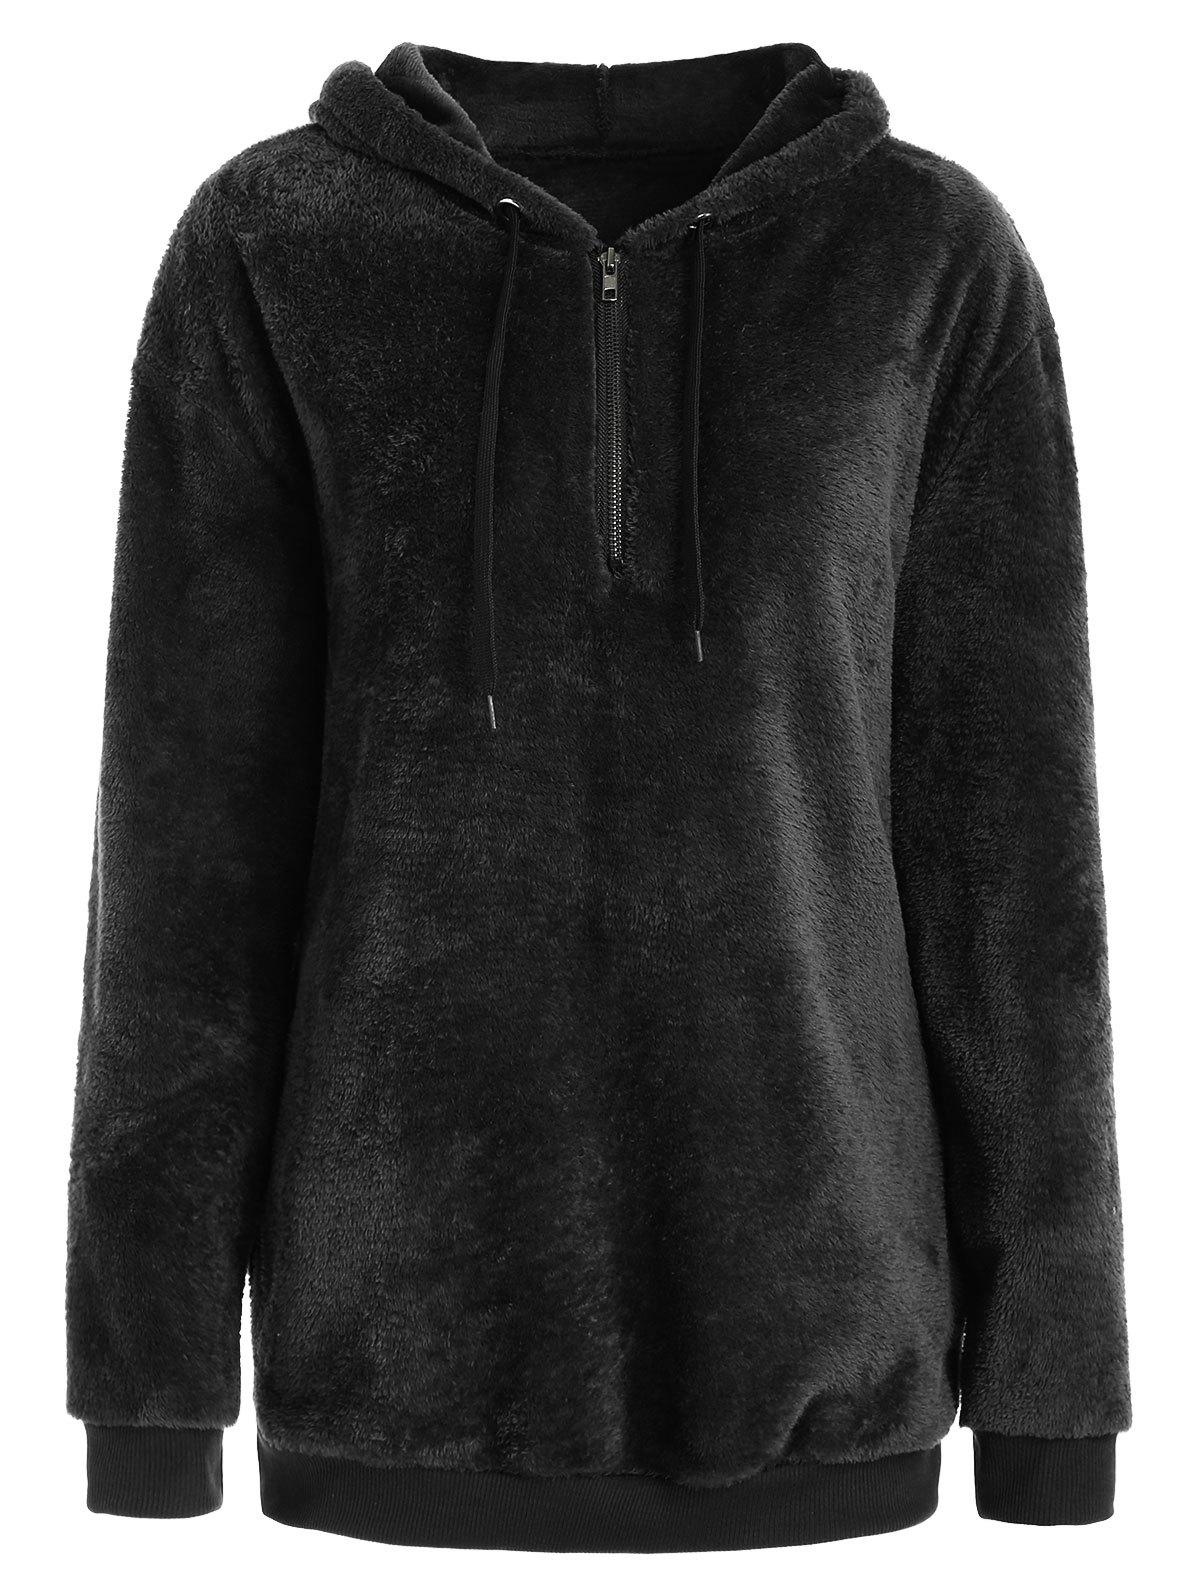 Store Half Zipper Fluffy Hoodie with Pockets